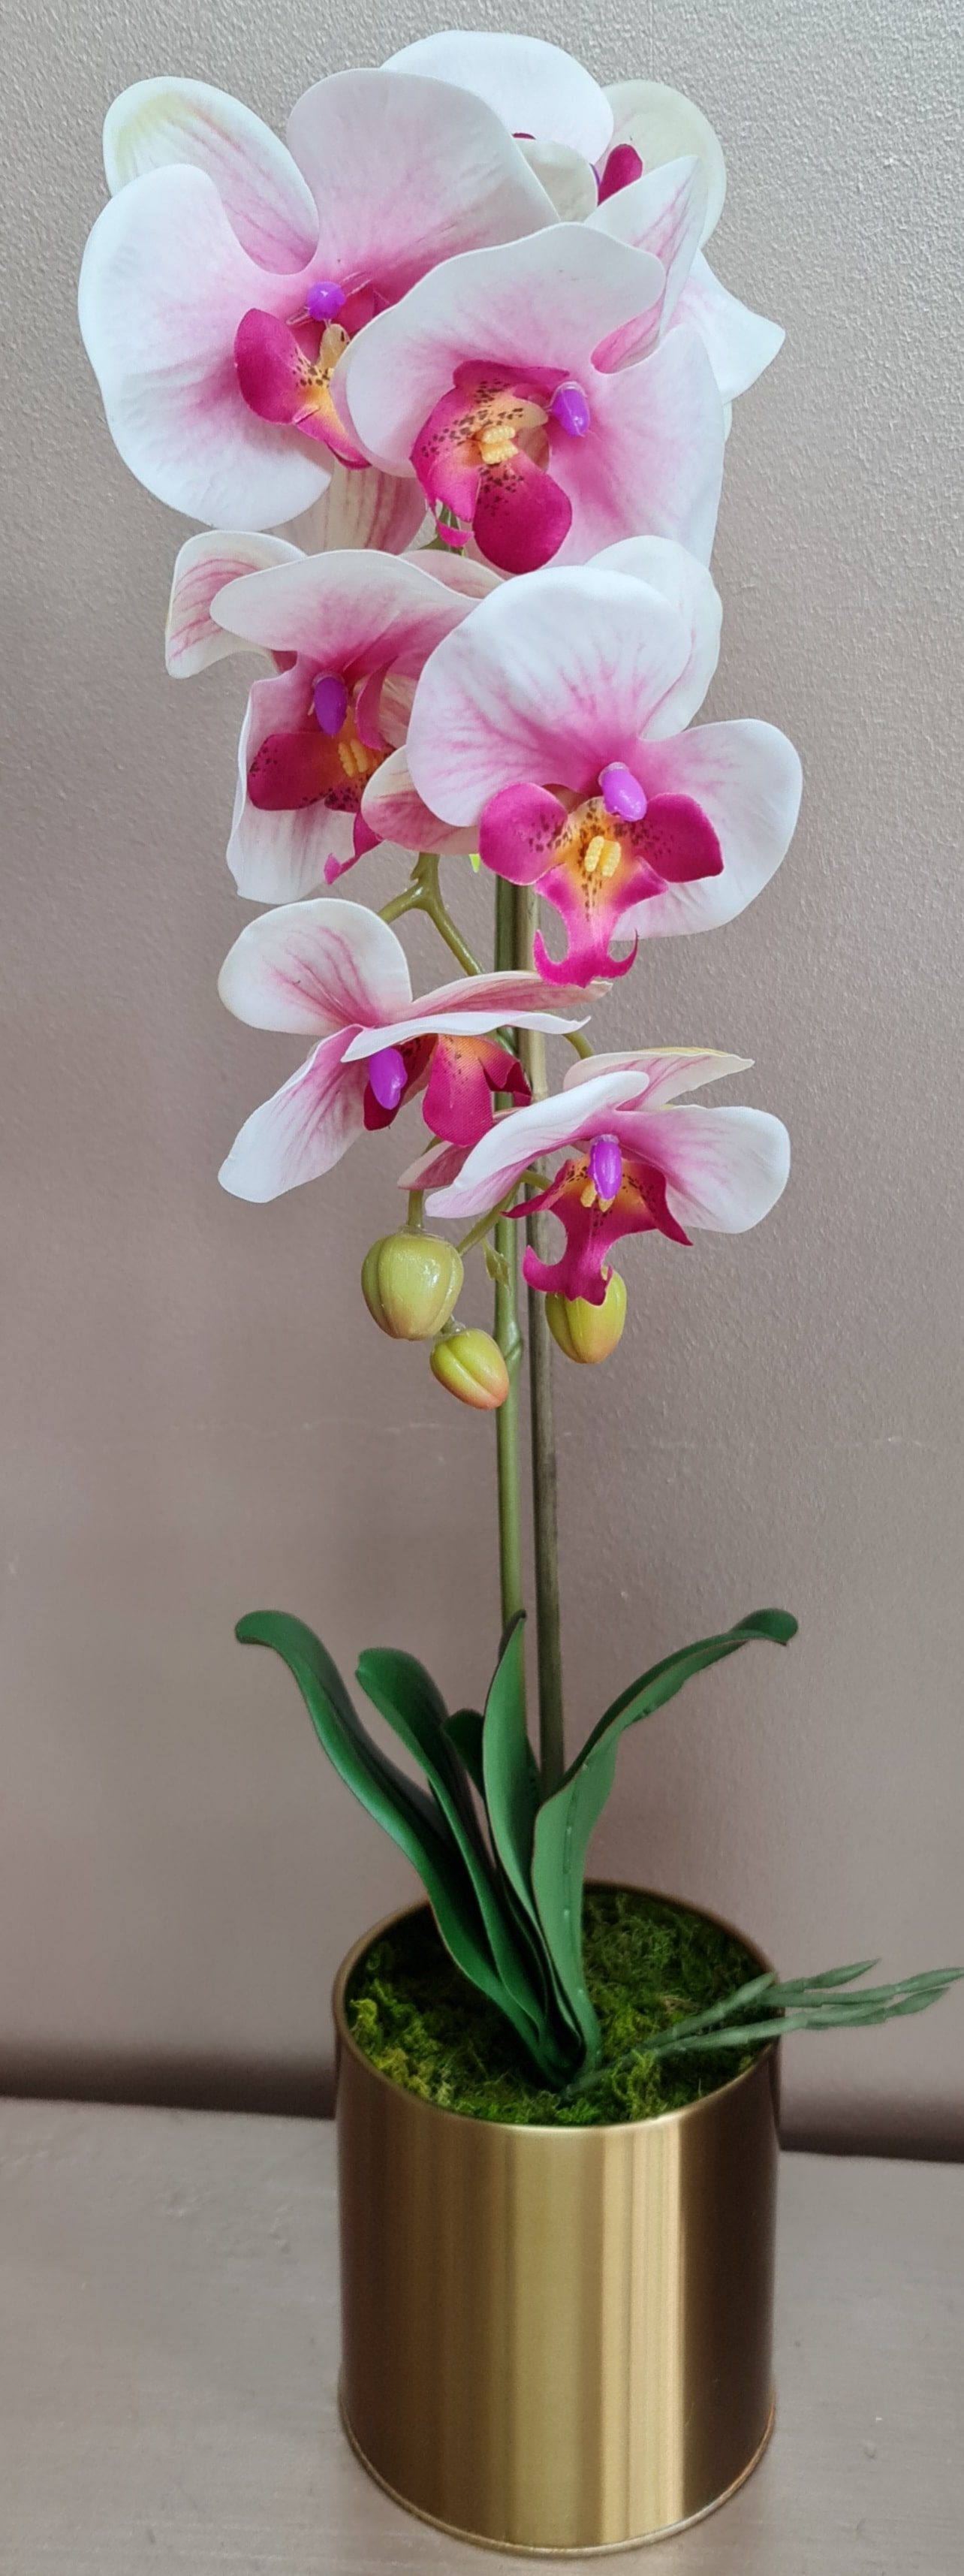 An elegant, stunning artificial phalaenopsis orchid displayed in a gold ceramic pot.  No watering necessary with this realistic artificial bloom, which can add a touch of colour and sophistication  to a room for years to come. Enjoy the beauty of the orchid in your home, office or shop without the need for maintenance.  Add a touch of elegance to your space year-round with a gorgeous, real-looking artificial phalaenopsis orchid from Linard.